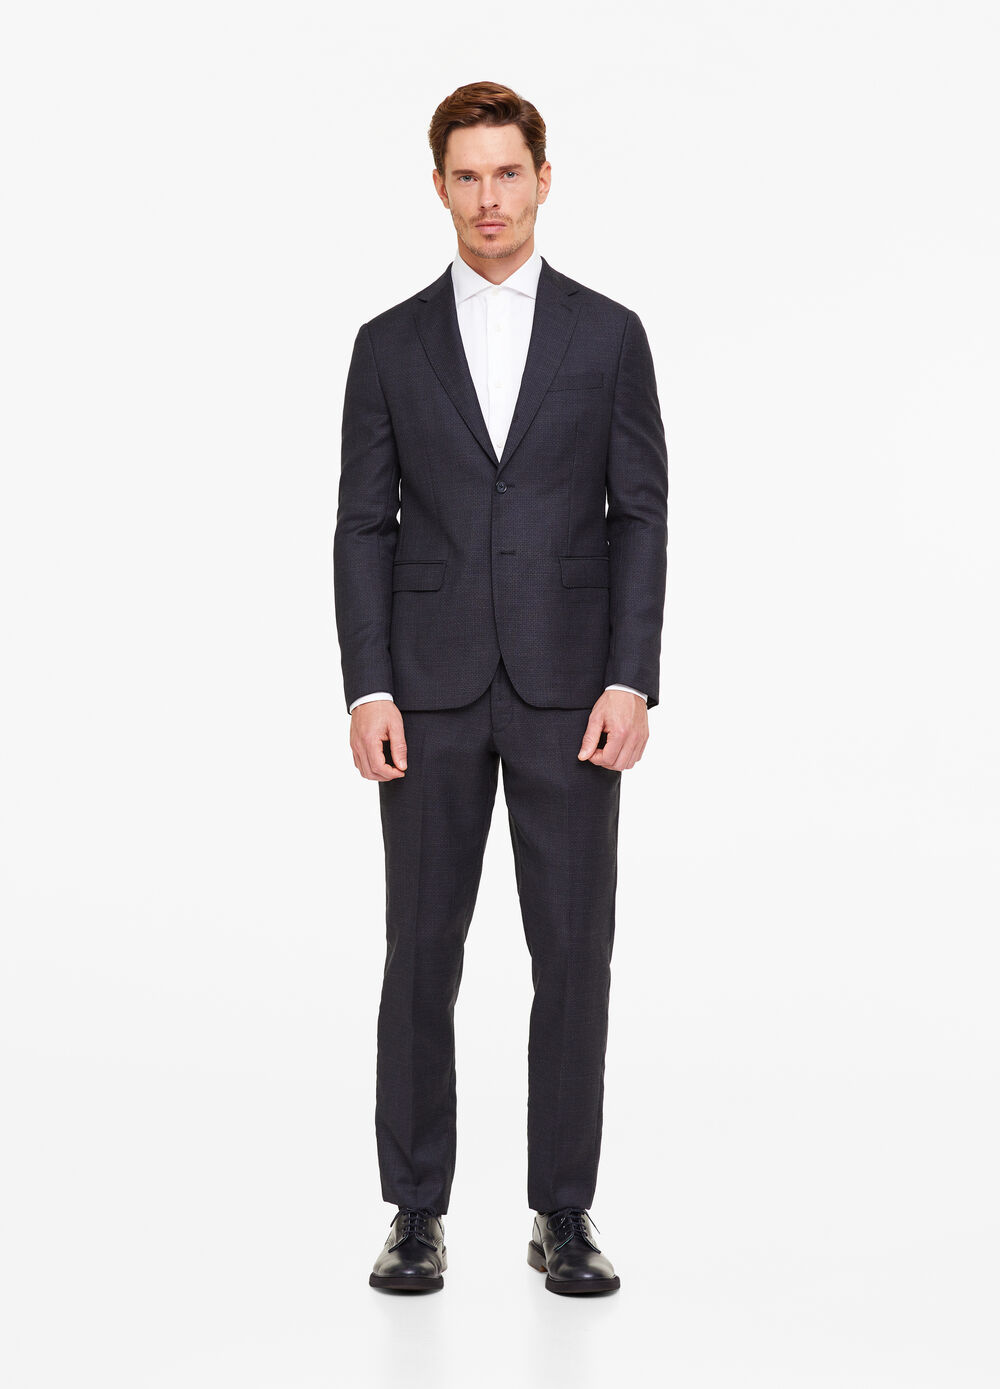 100% wool suit with micro pattern